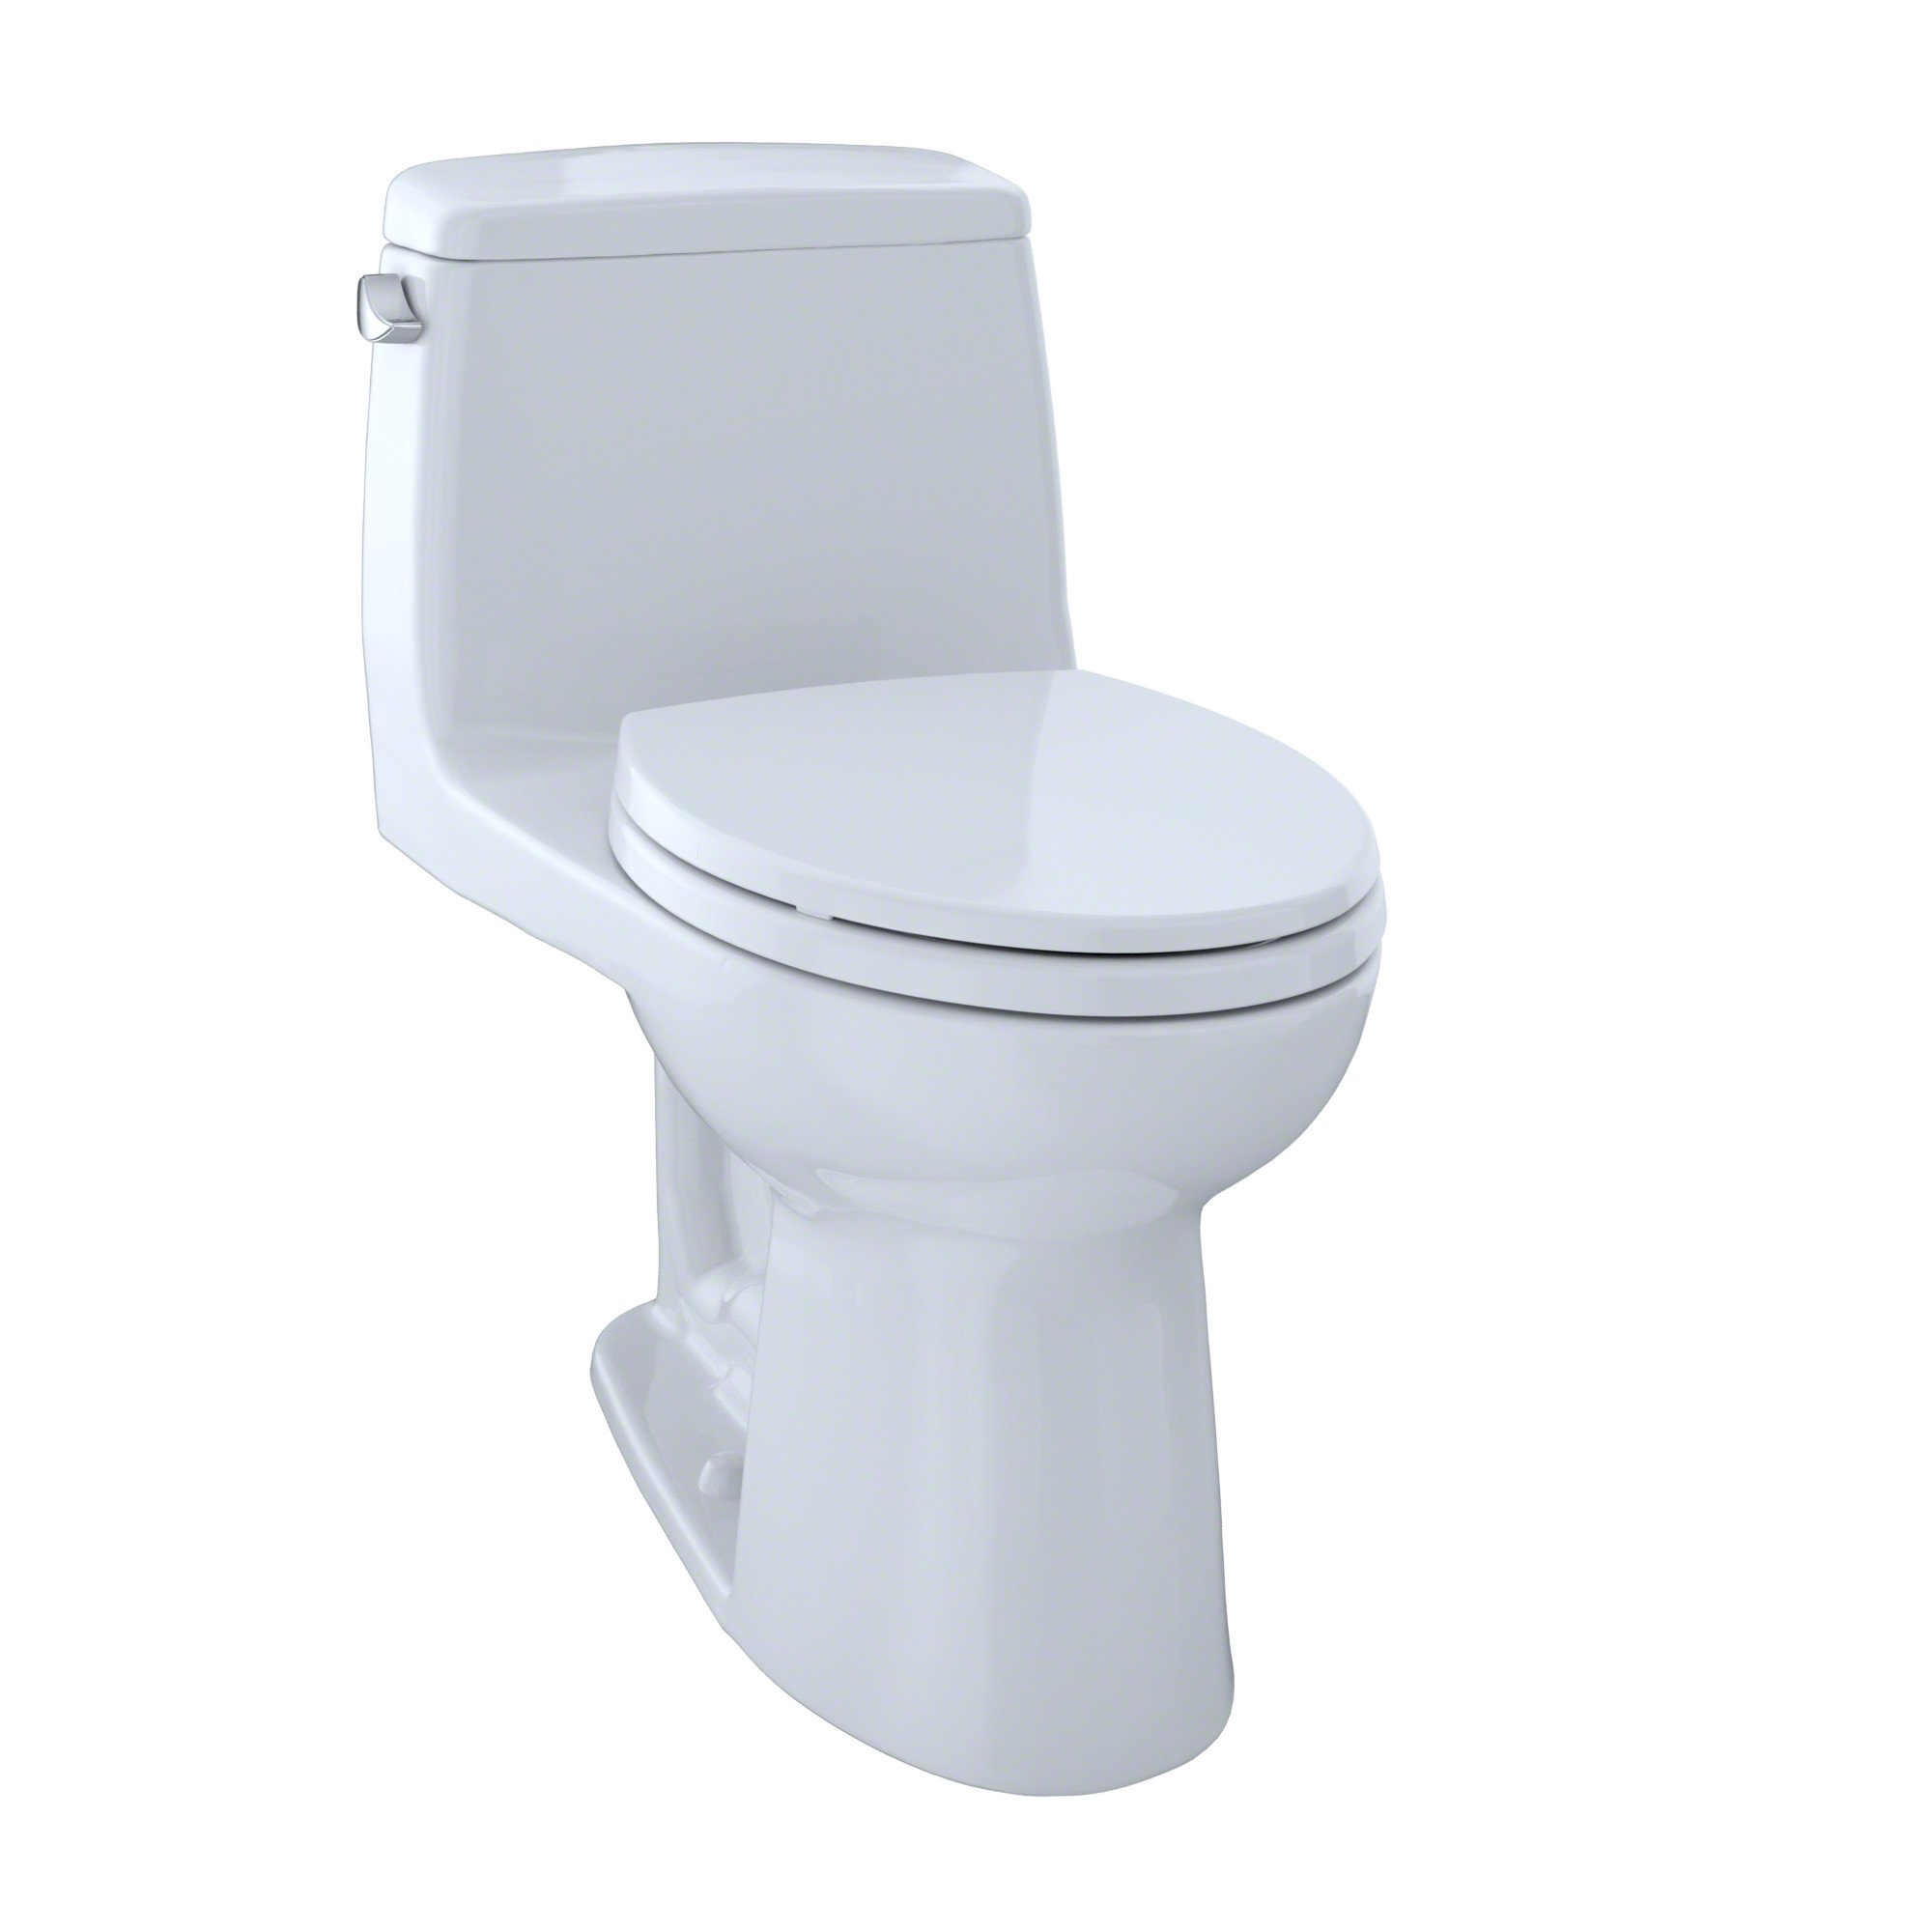 TOTO MS854114E#01 Eco Ultramax Elongated One Piece Toilet, Cotton White by TOTO